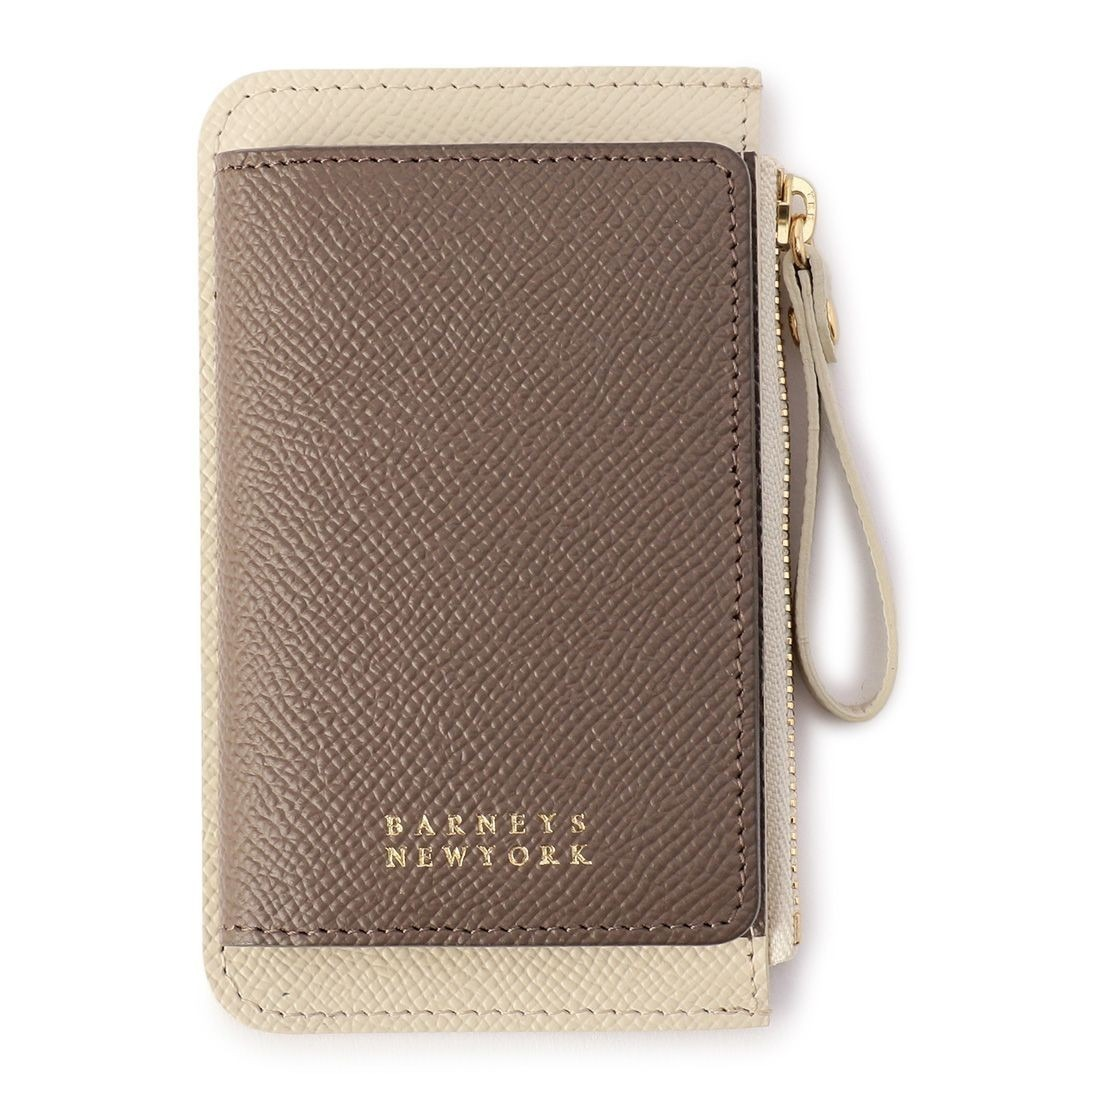 shop barneys new york wallets & card holders